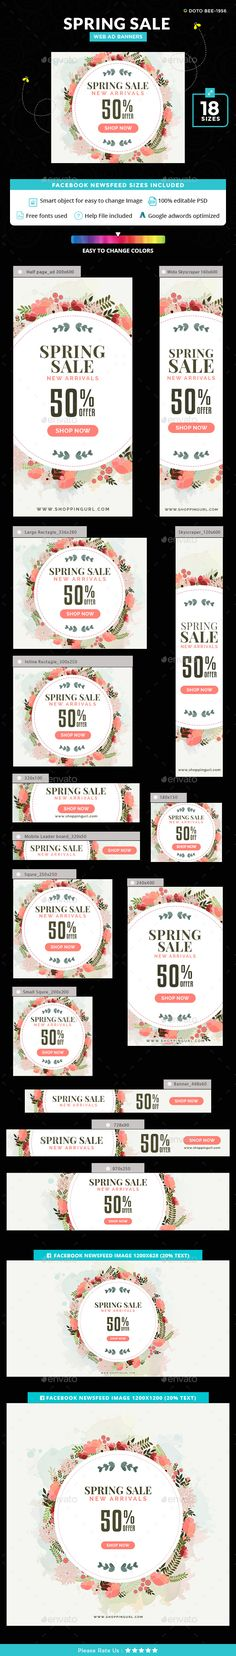 Spring Sale Banners - Banners & Ads Web Elements Download here : https://graphicriver.net/item/spring-sale-banners/19699940?s_rank=10&ref=Al-fatih